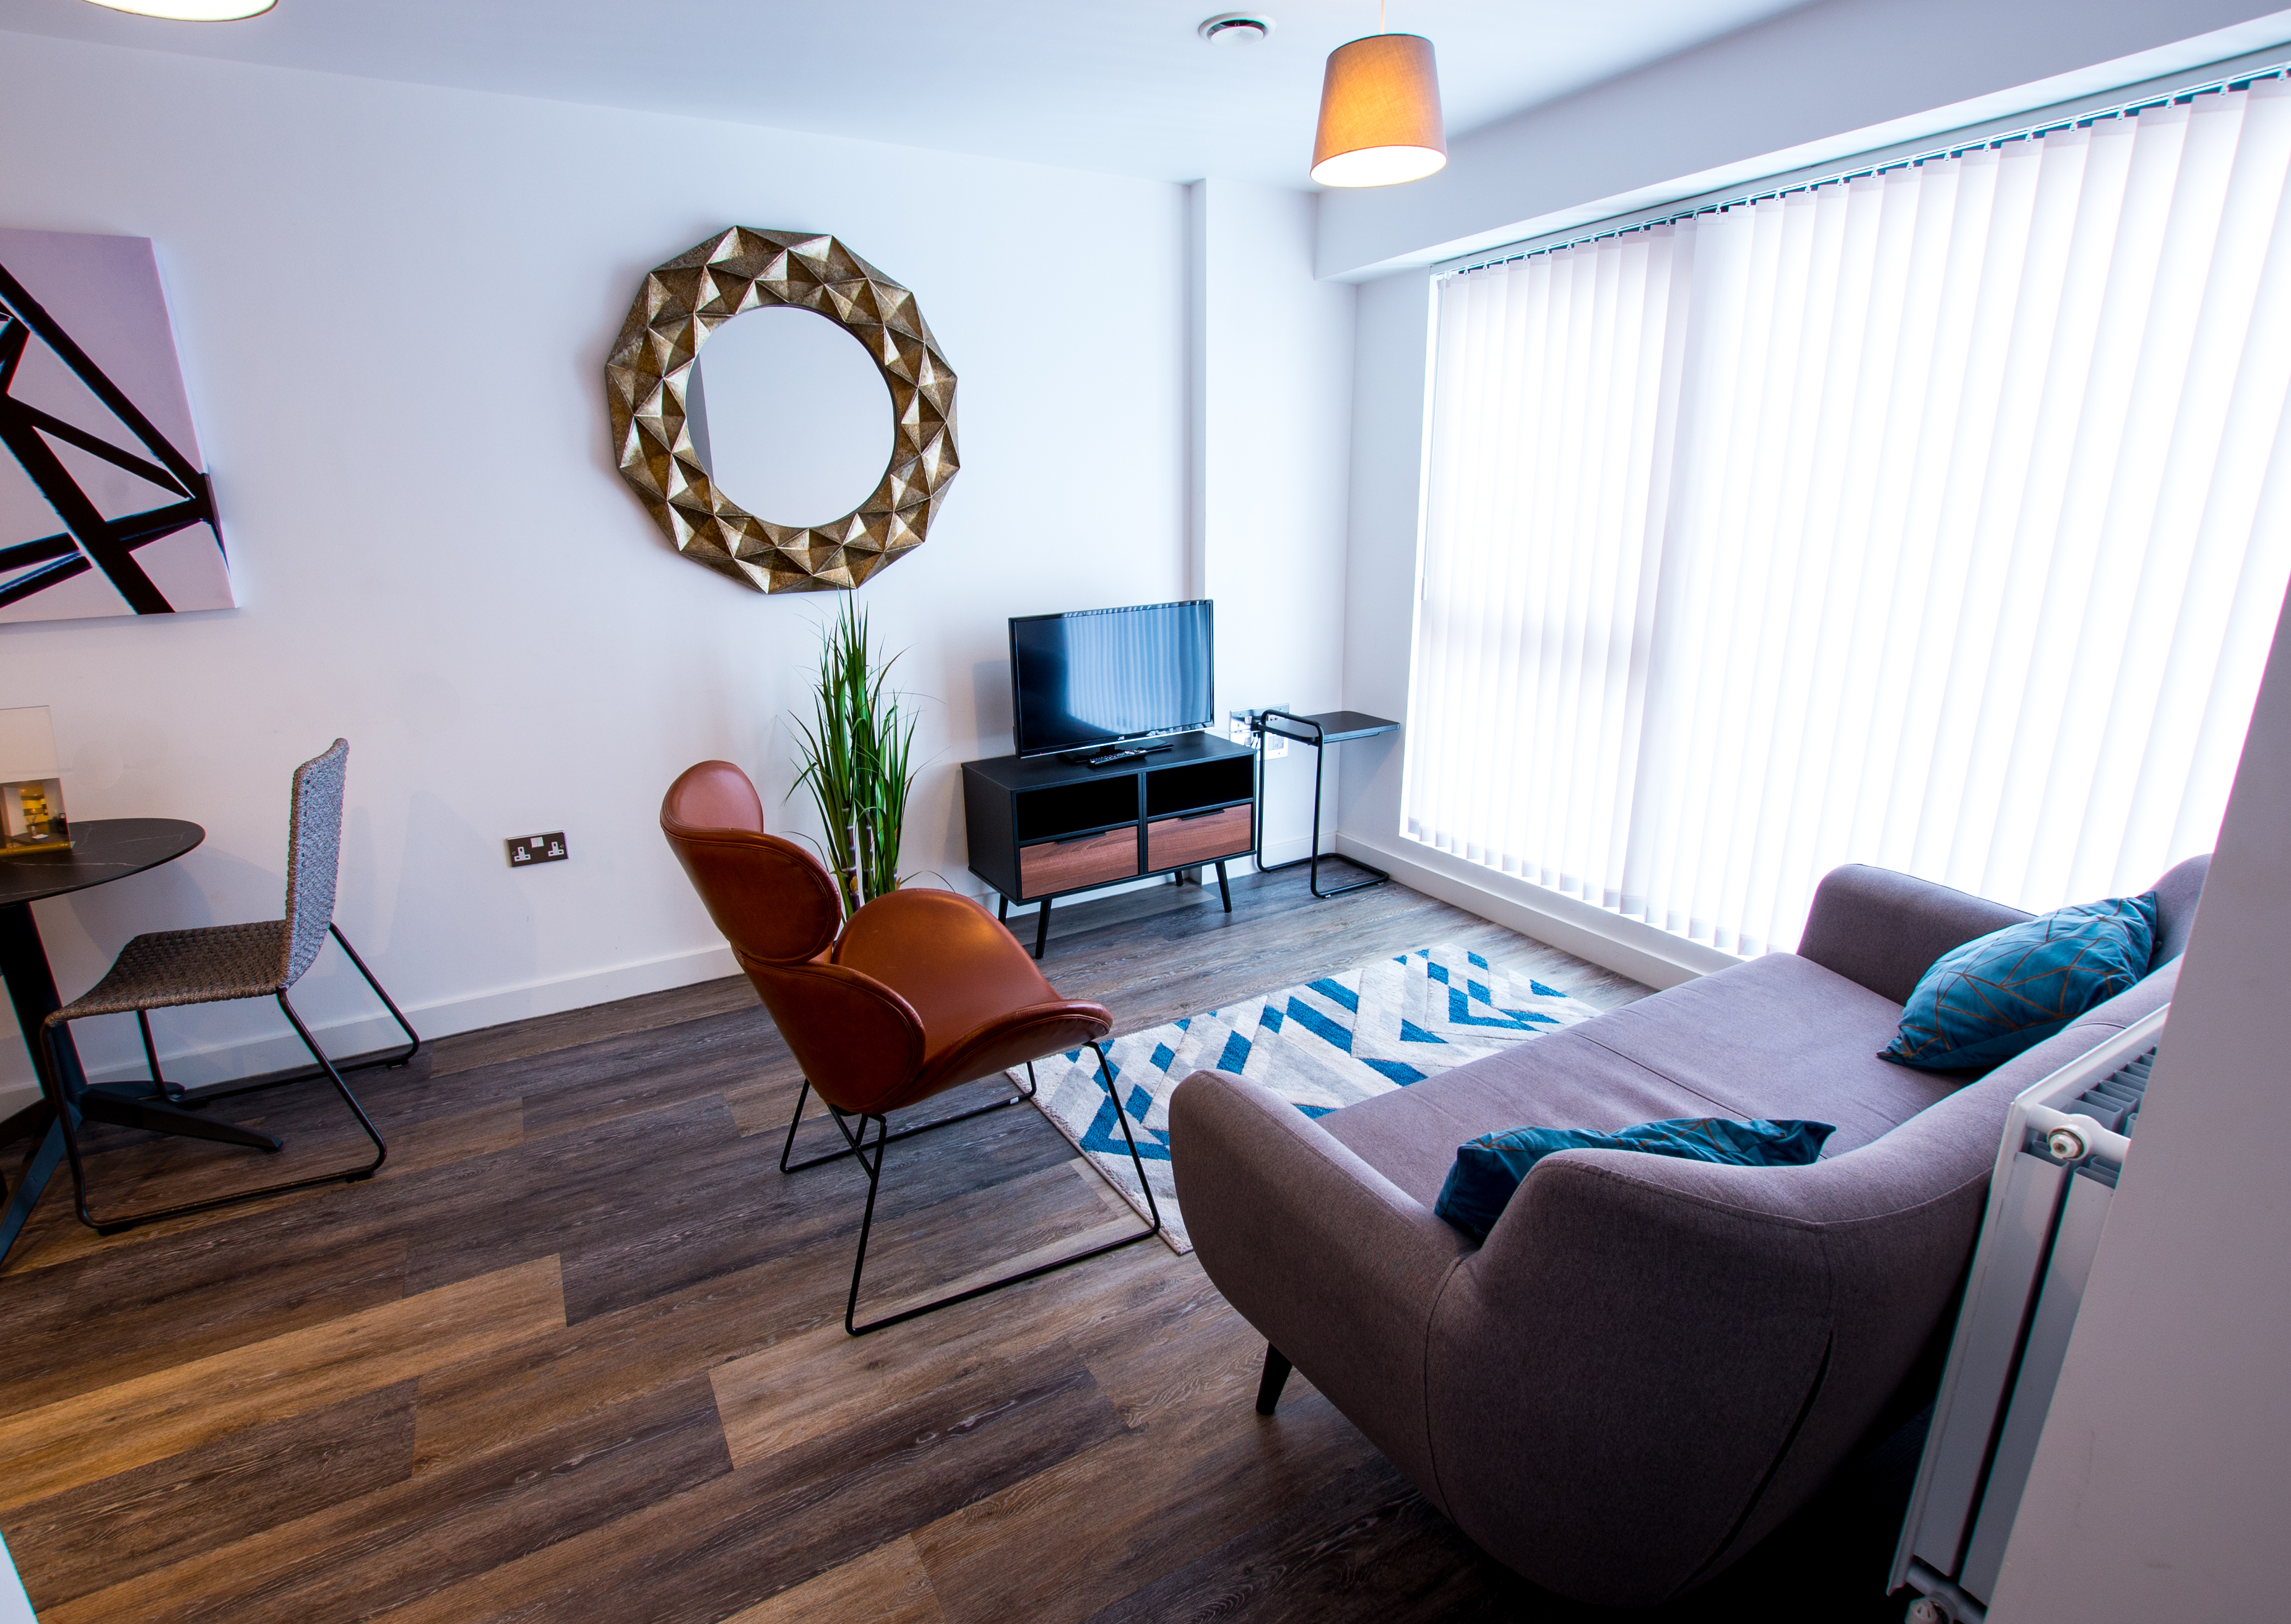 Accomodation Location | Comfy Workers